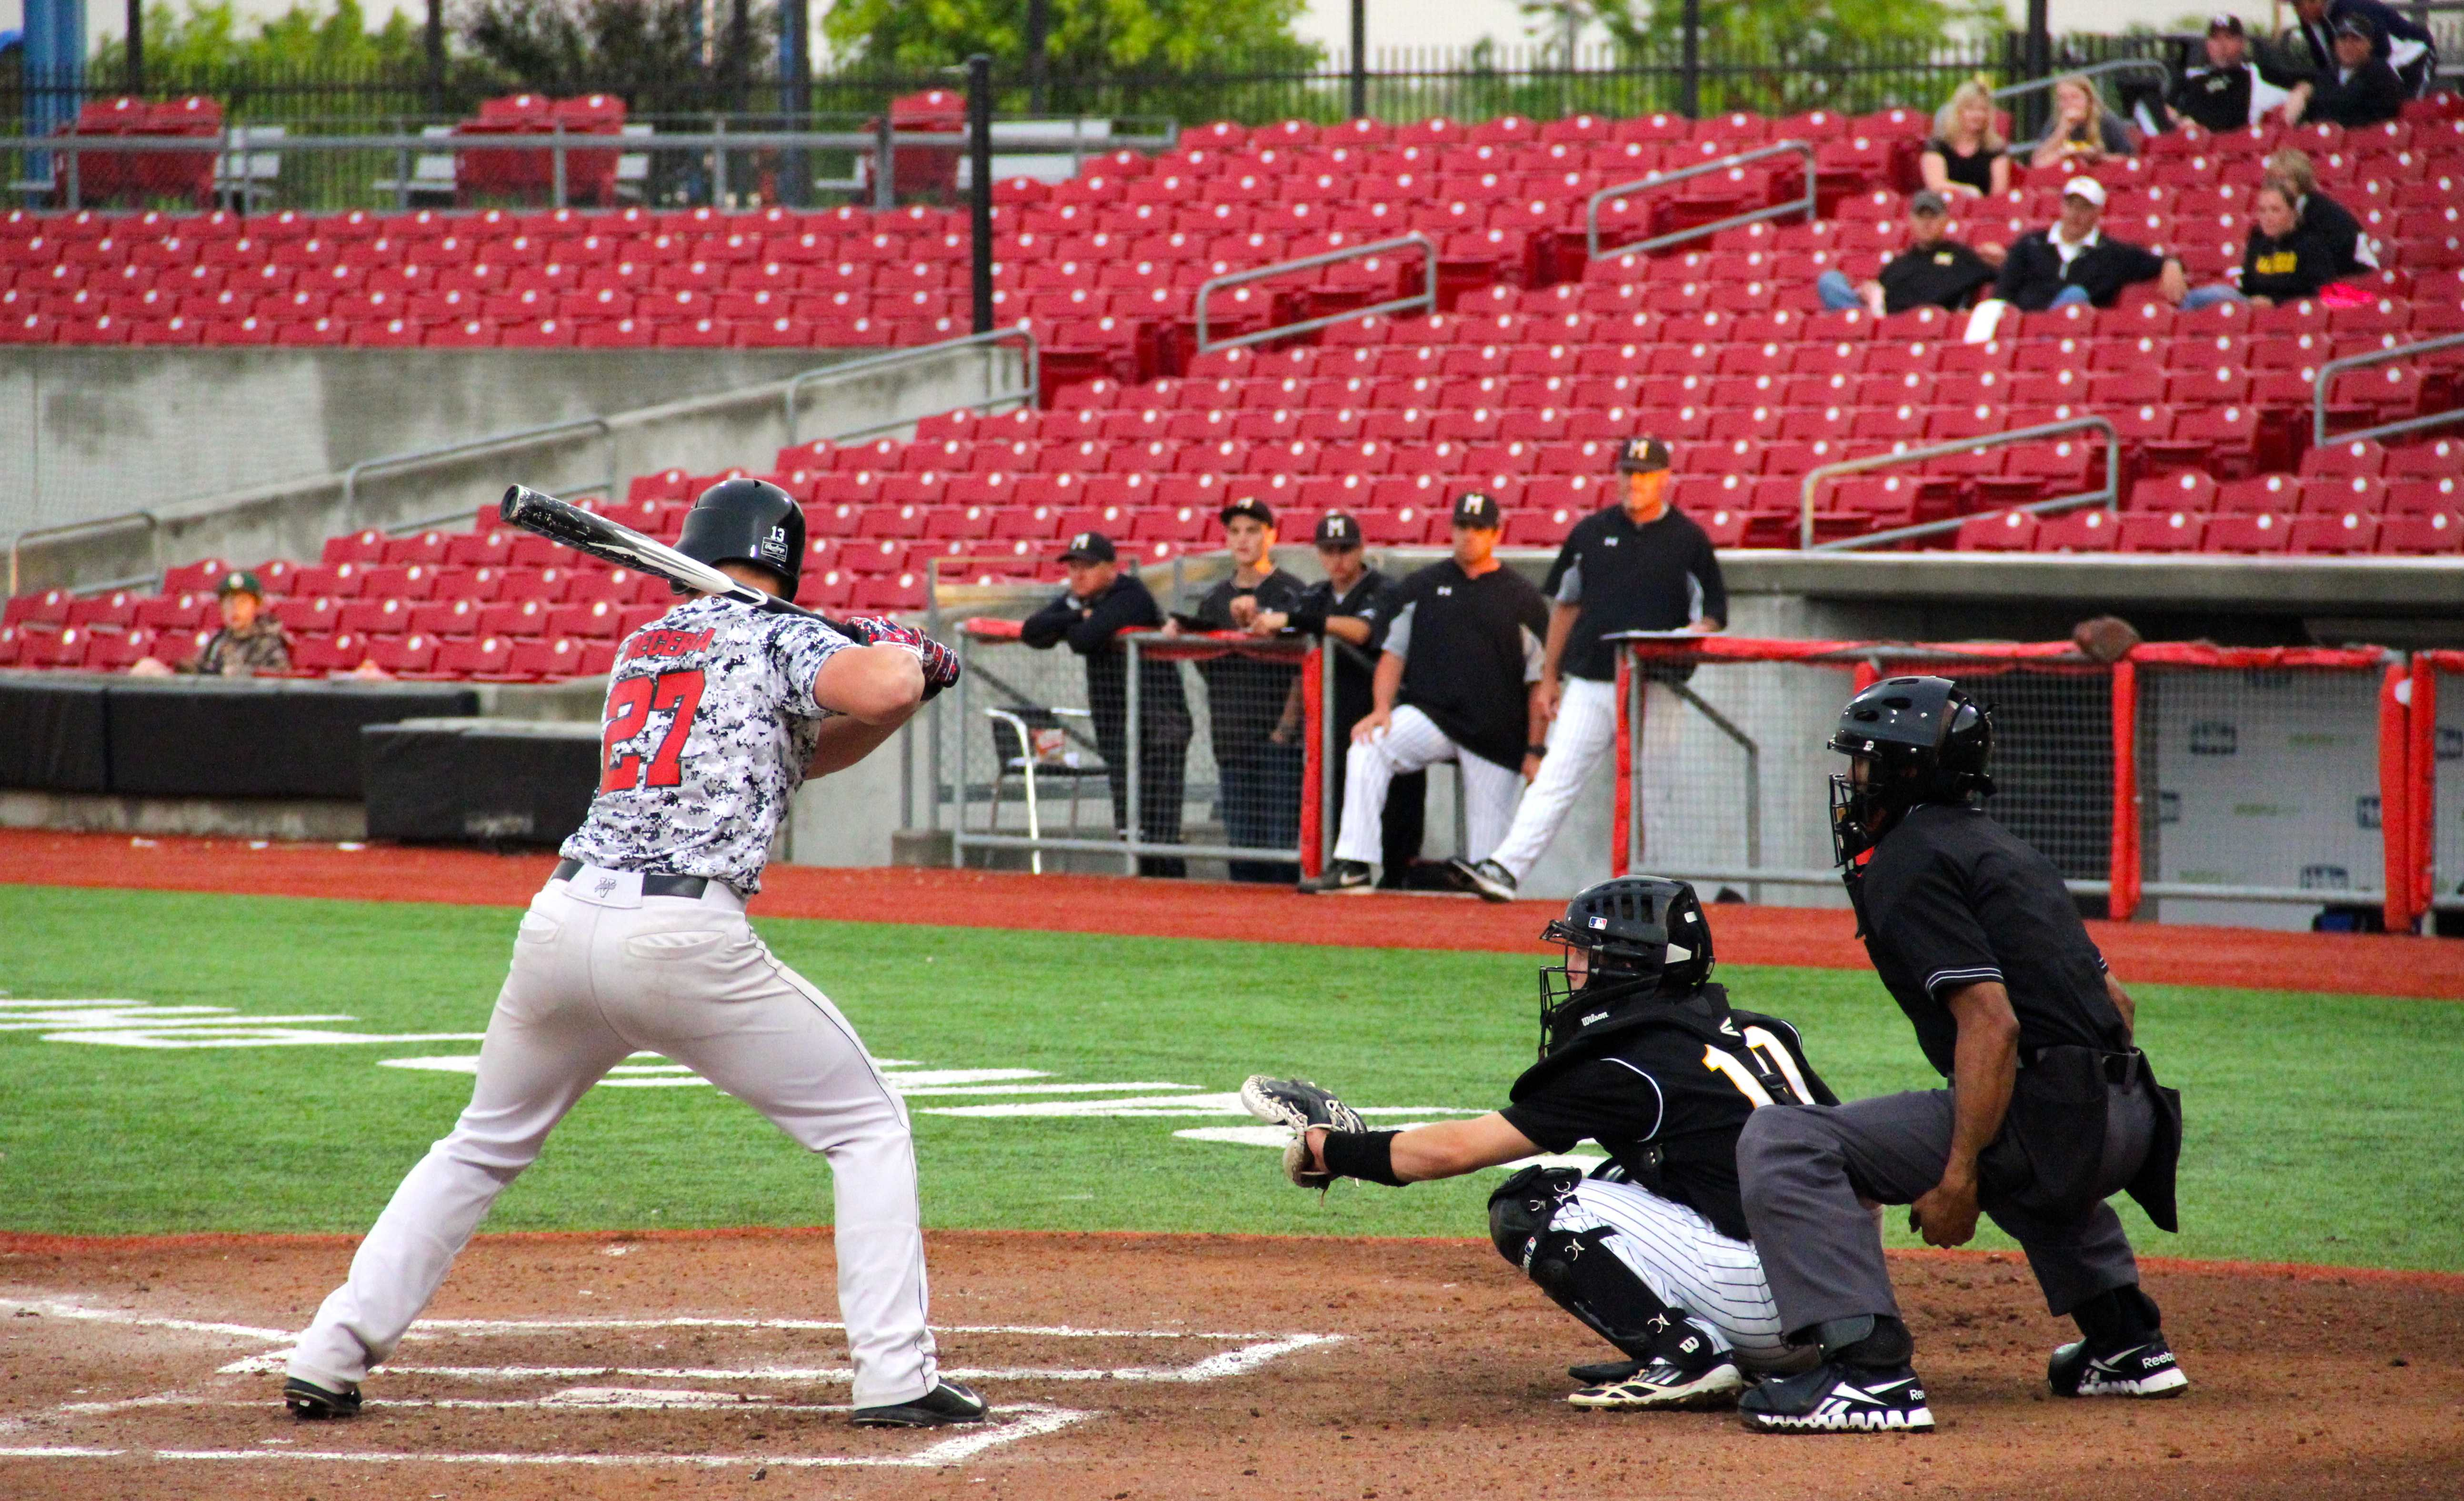 Freshman designate hitter Trey Bercerra at-bat for the Cowboys in their 4-0 loss to Mansfield on Thursday, May 8. Photo by Shannon Wilkenson